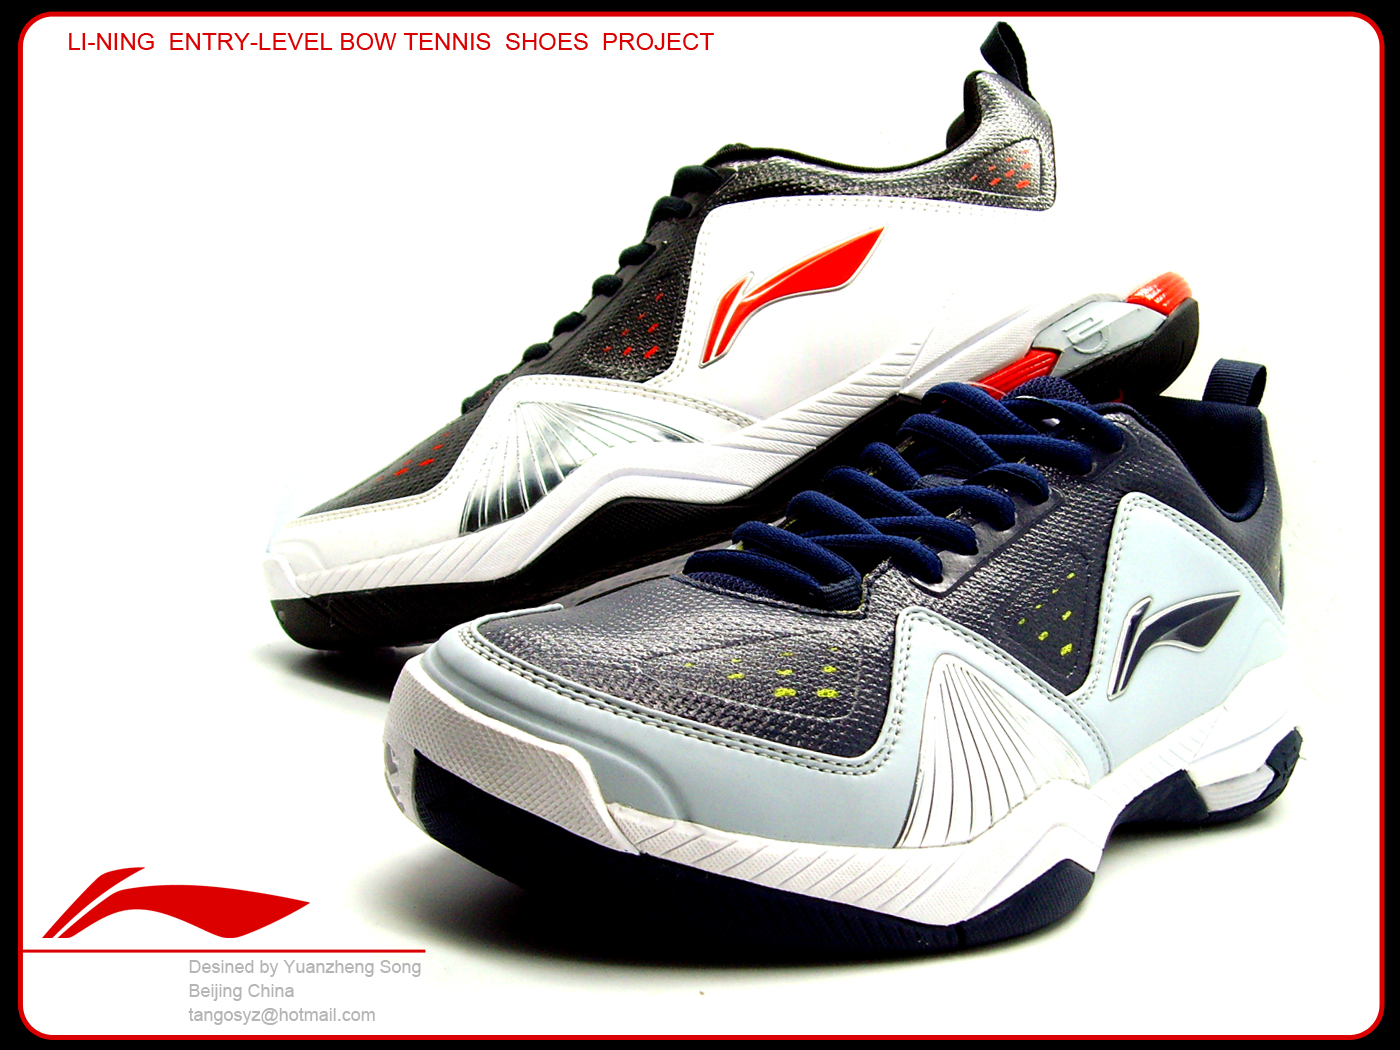 li ning entry level bow tennis shoes by yuanzheng song at